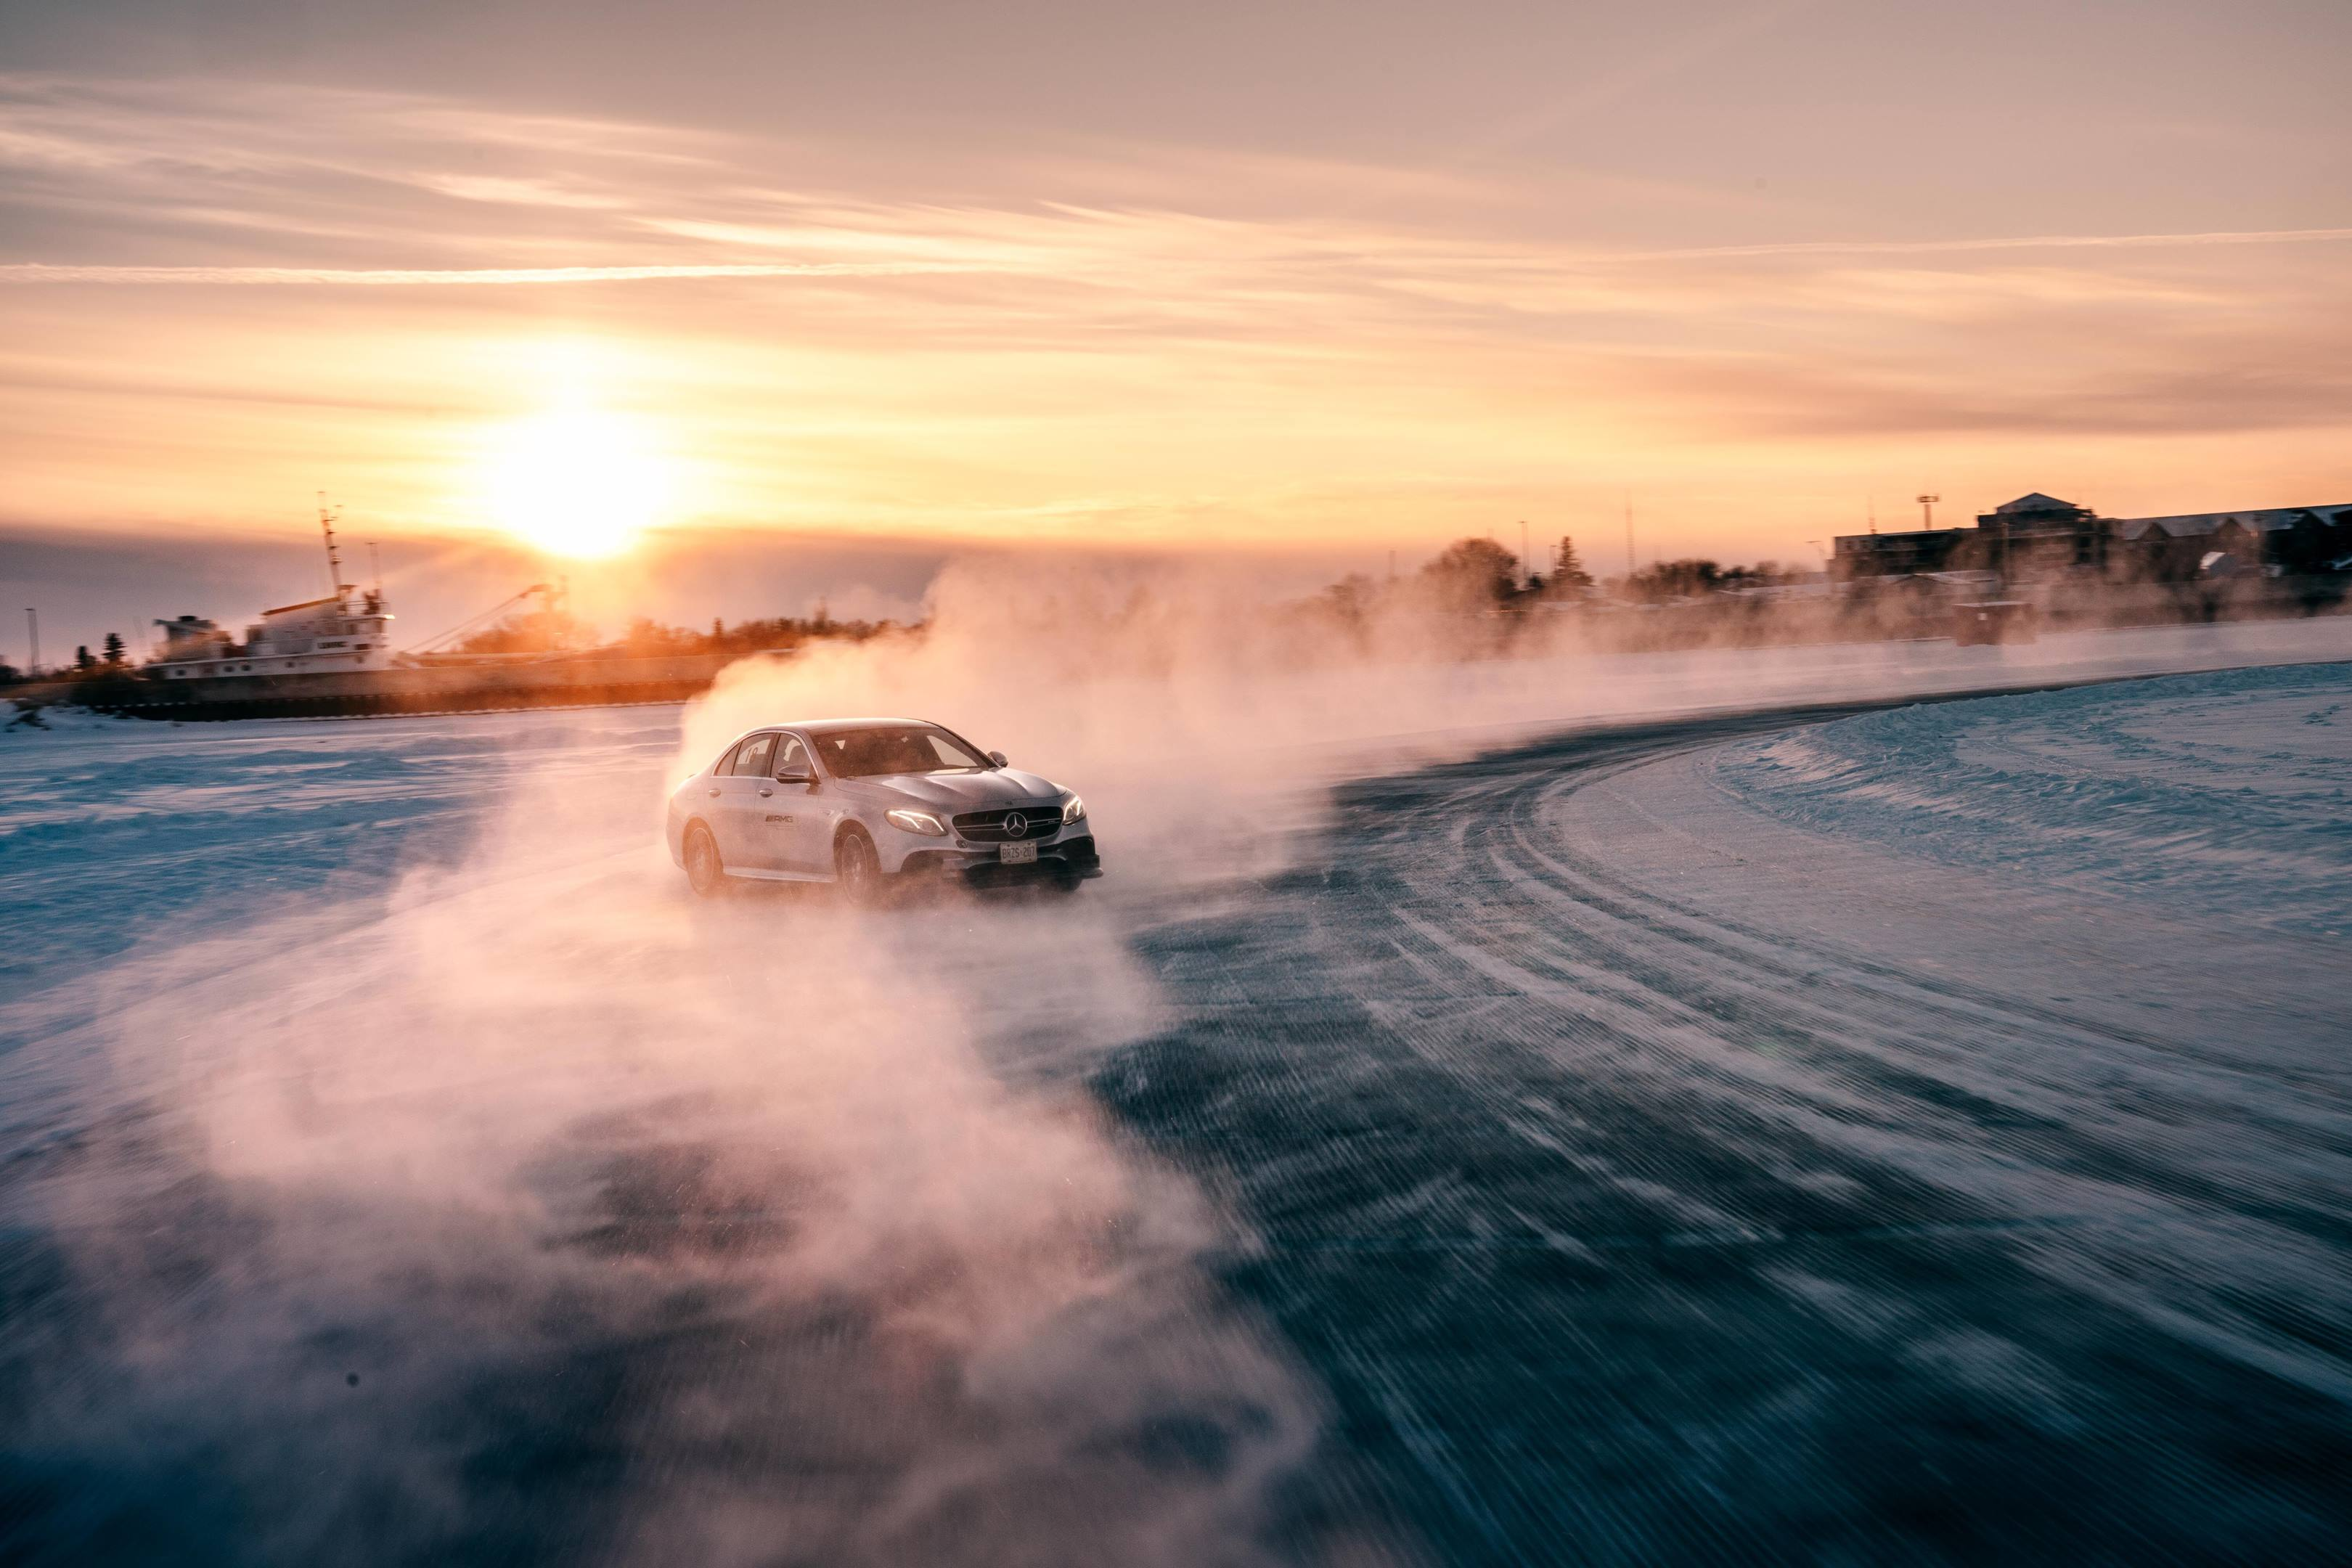 Mercedes-AMG driving on ice at sunset